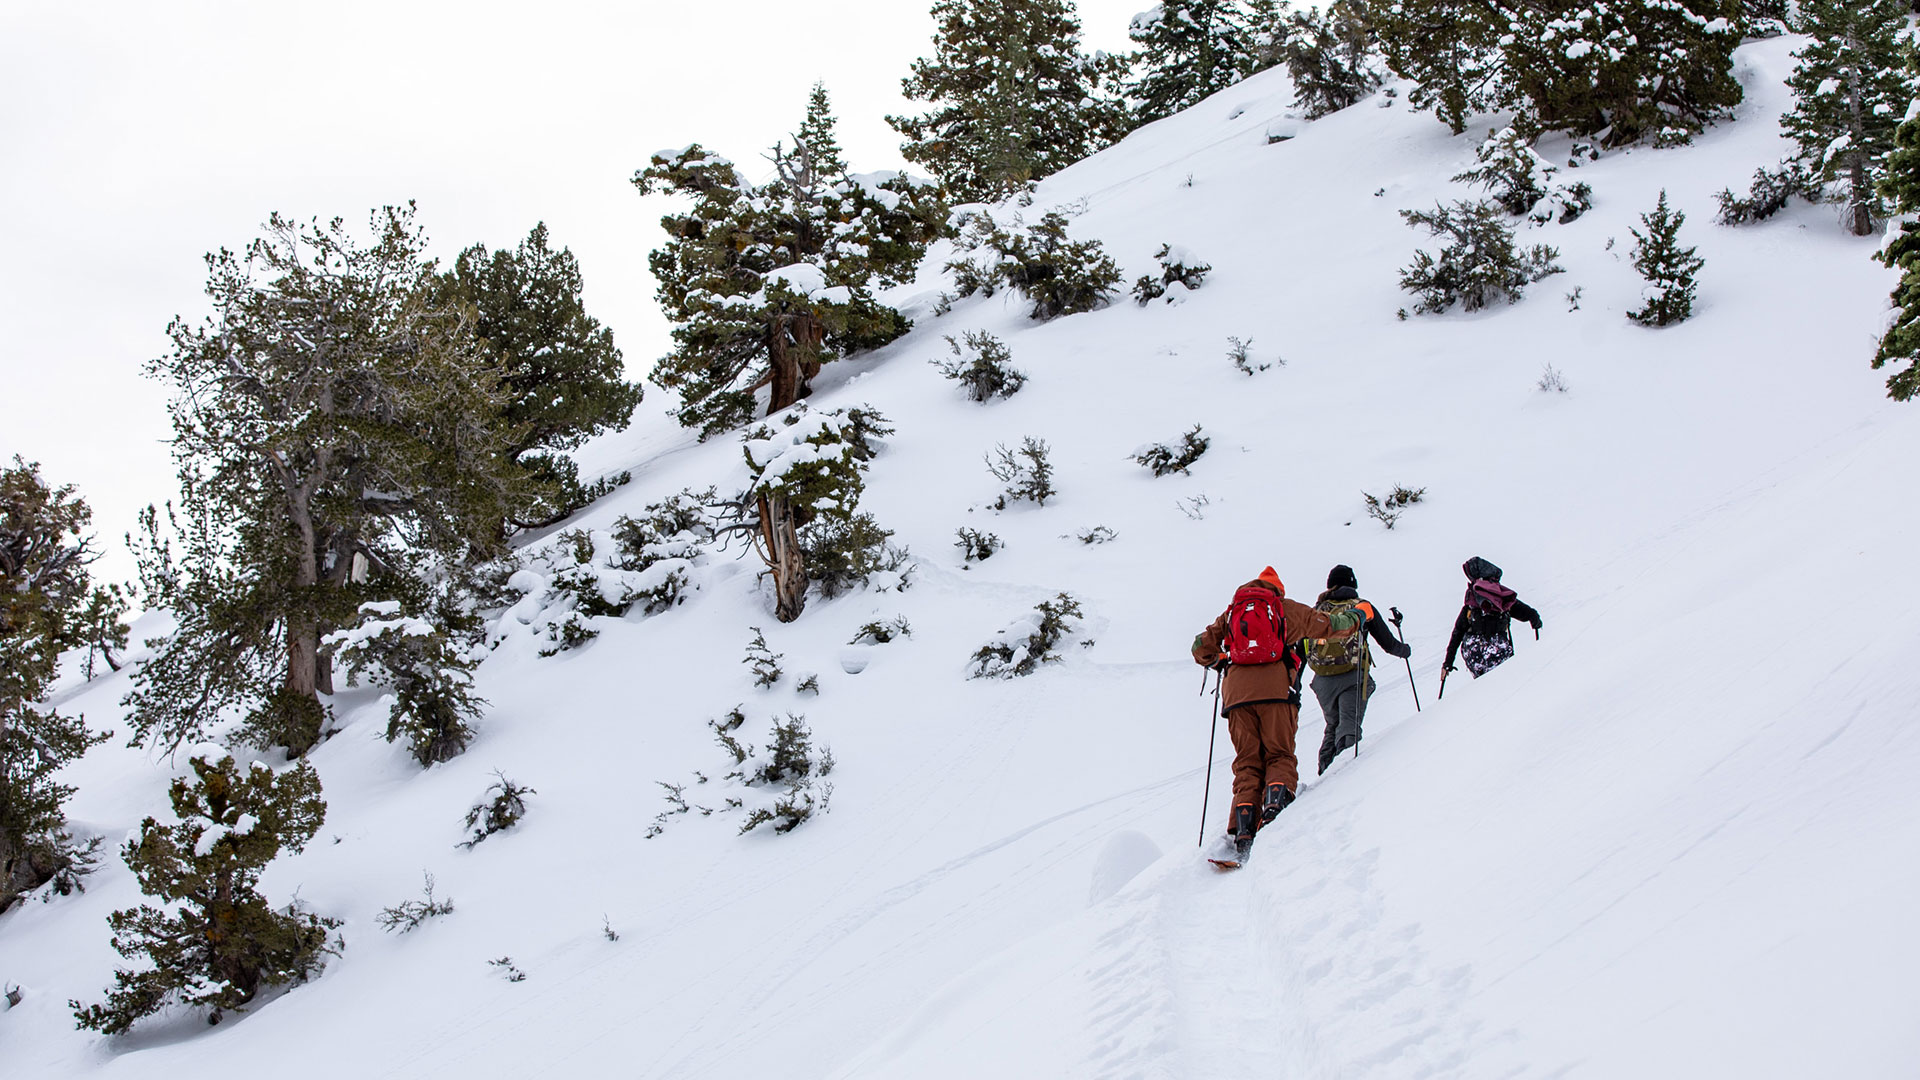 Snowboarder Triggers Avalanche in Colorado requiring 20+ Search and Rescue Volunteers | SNOWBOARDER Magazine